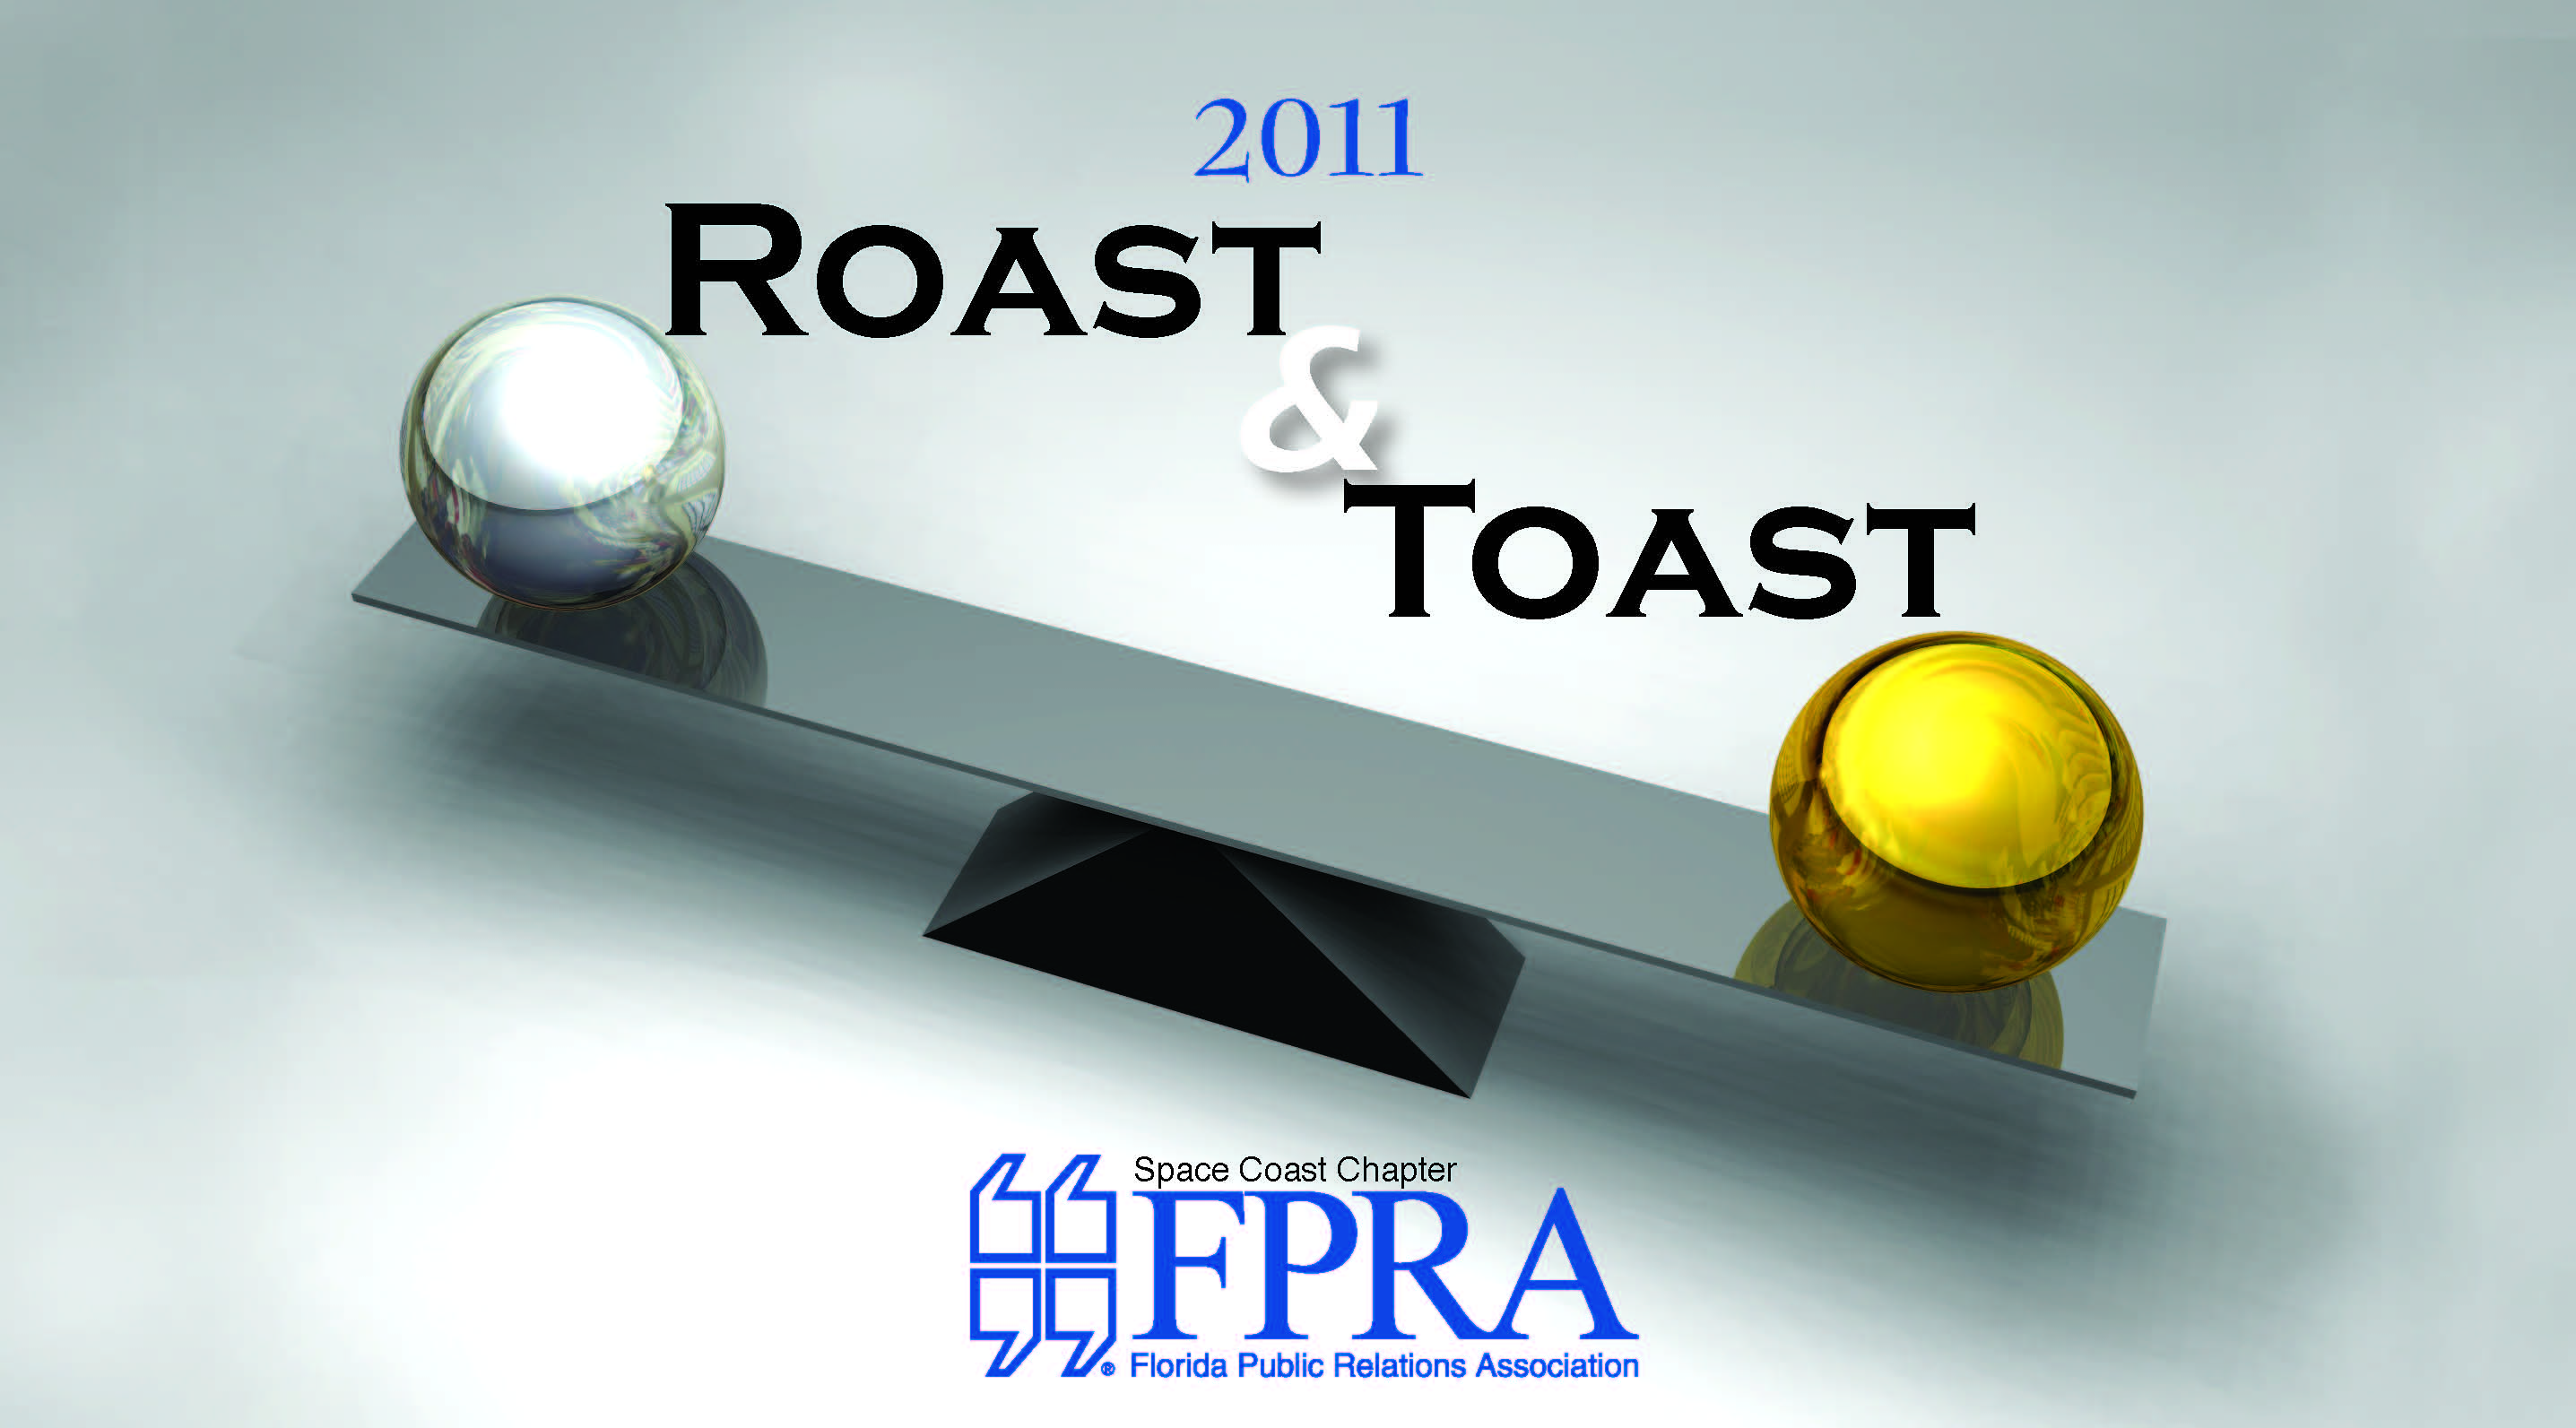 Save the Date for the 2011 FPRA Roast & Toast